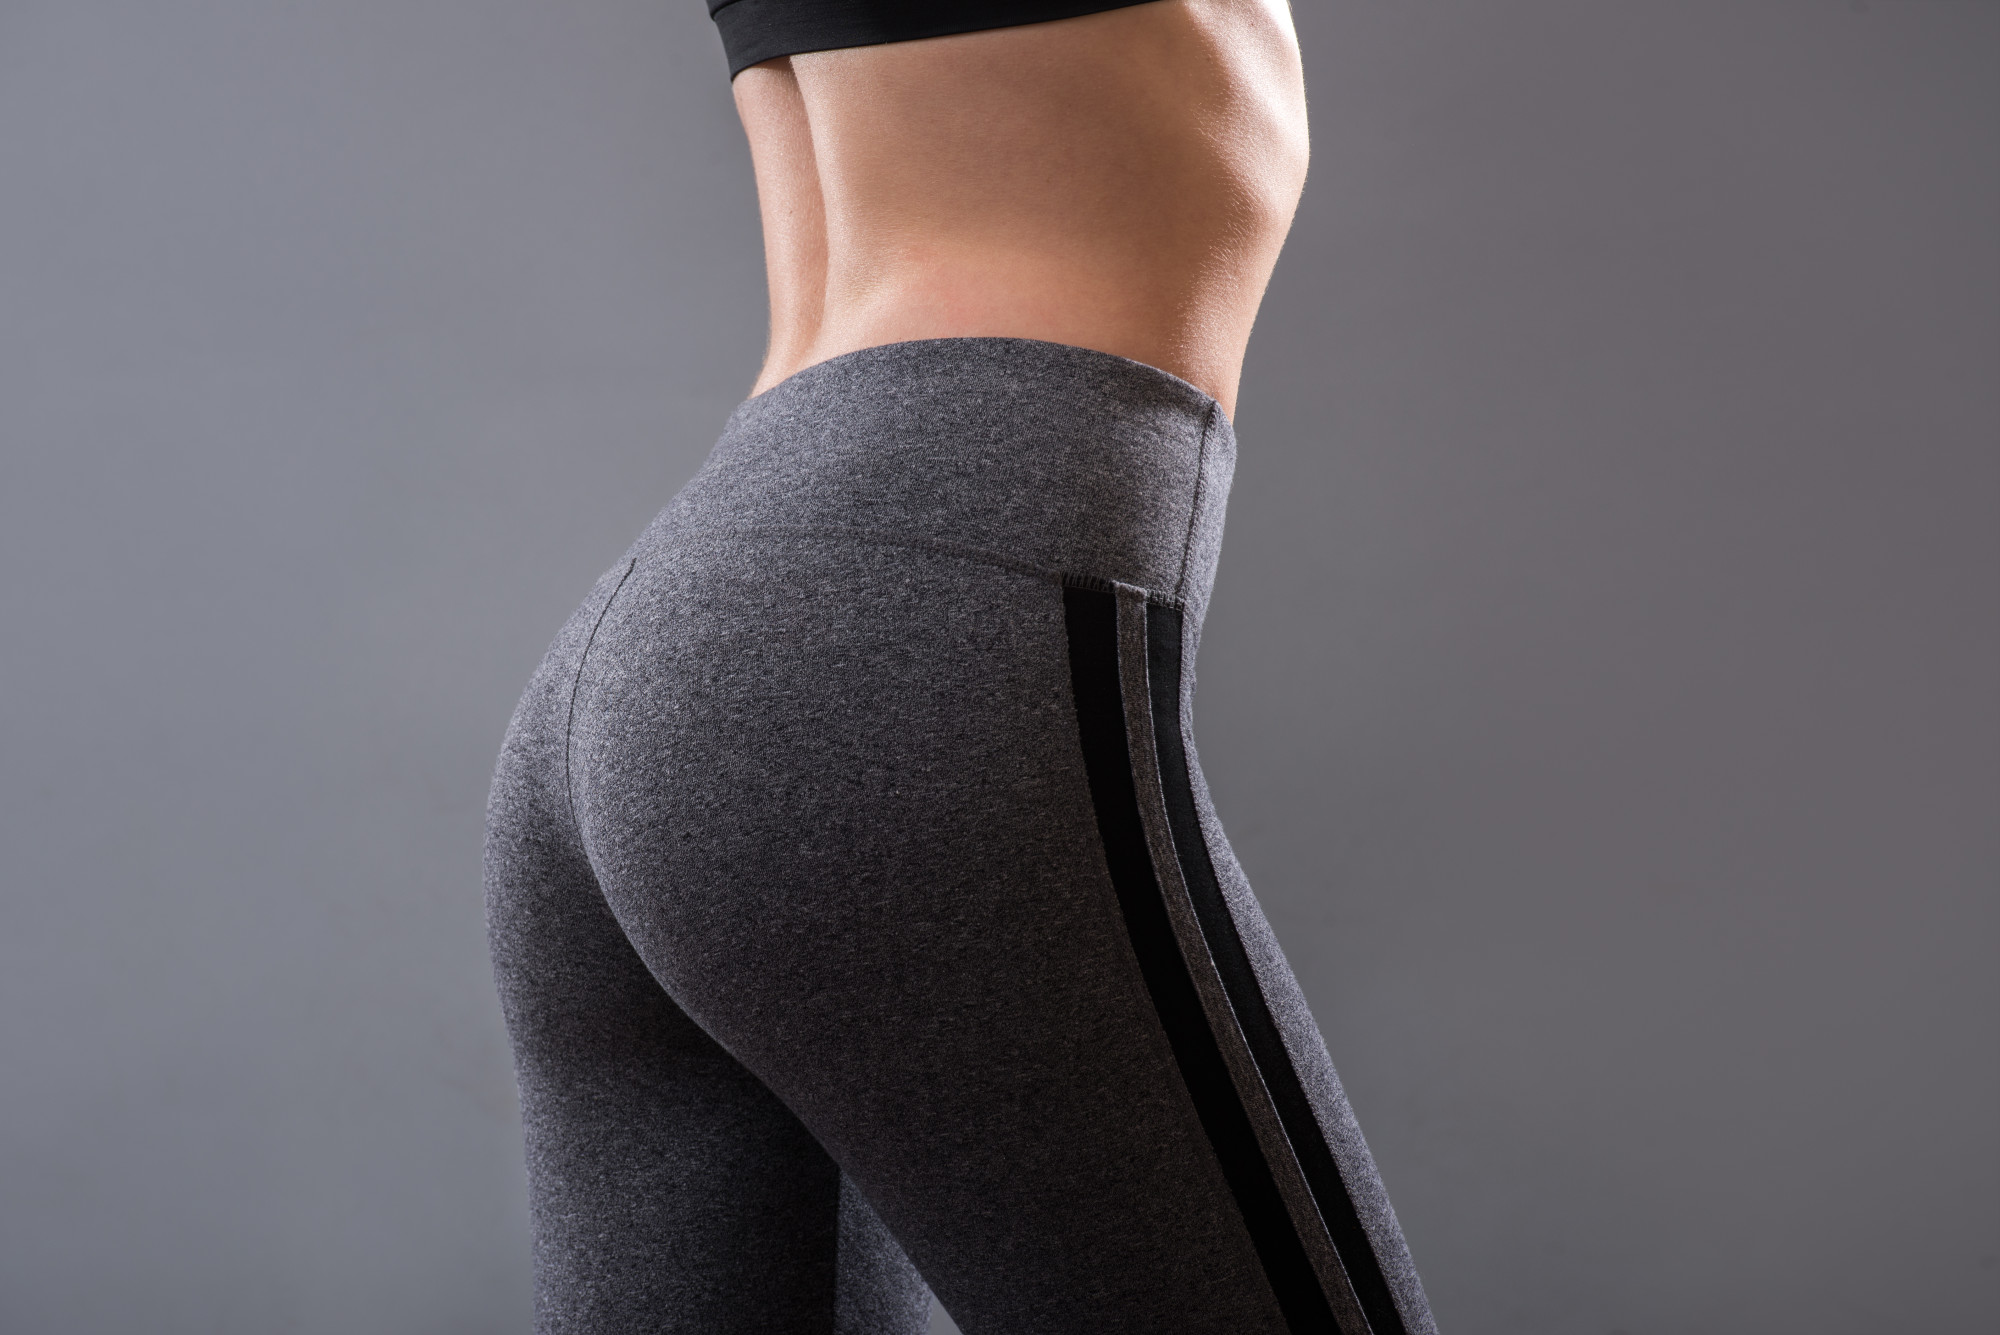 woman's booty in yoga pants